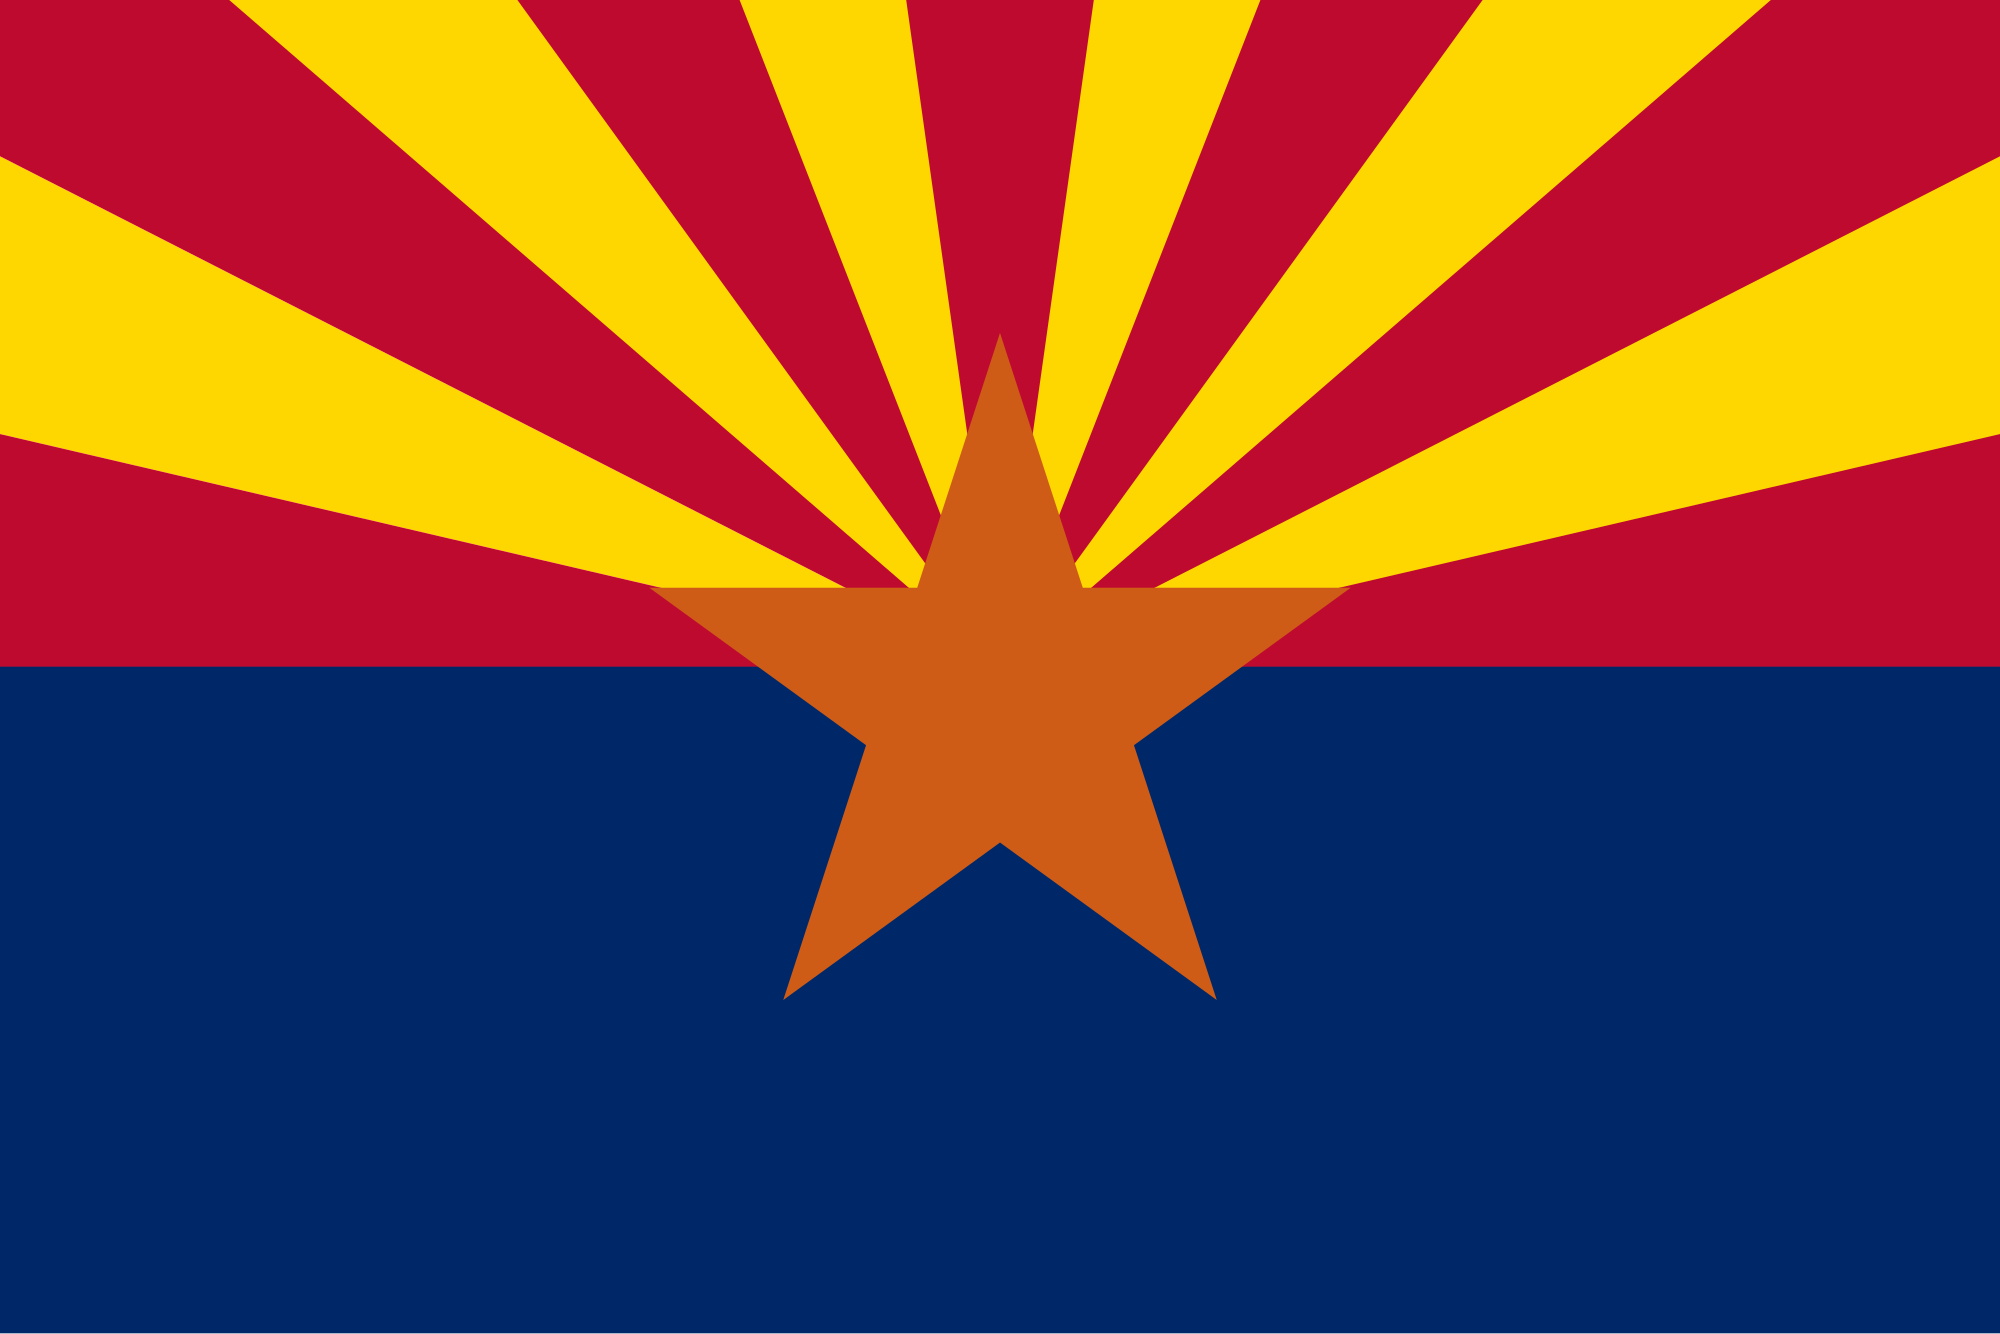 Affirming Free Speech in Arizona